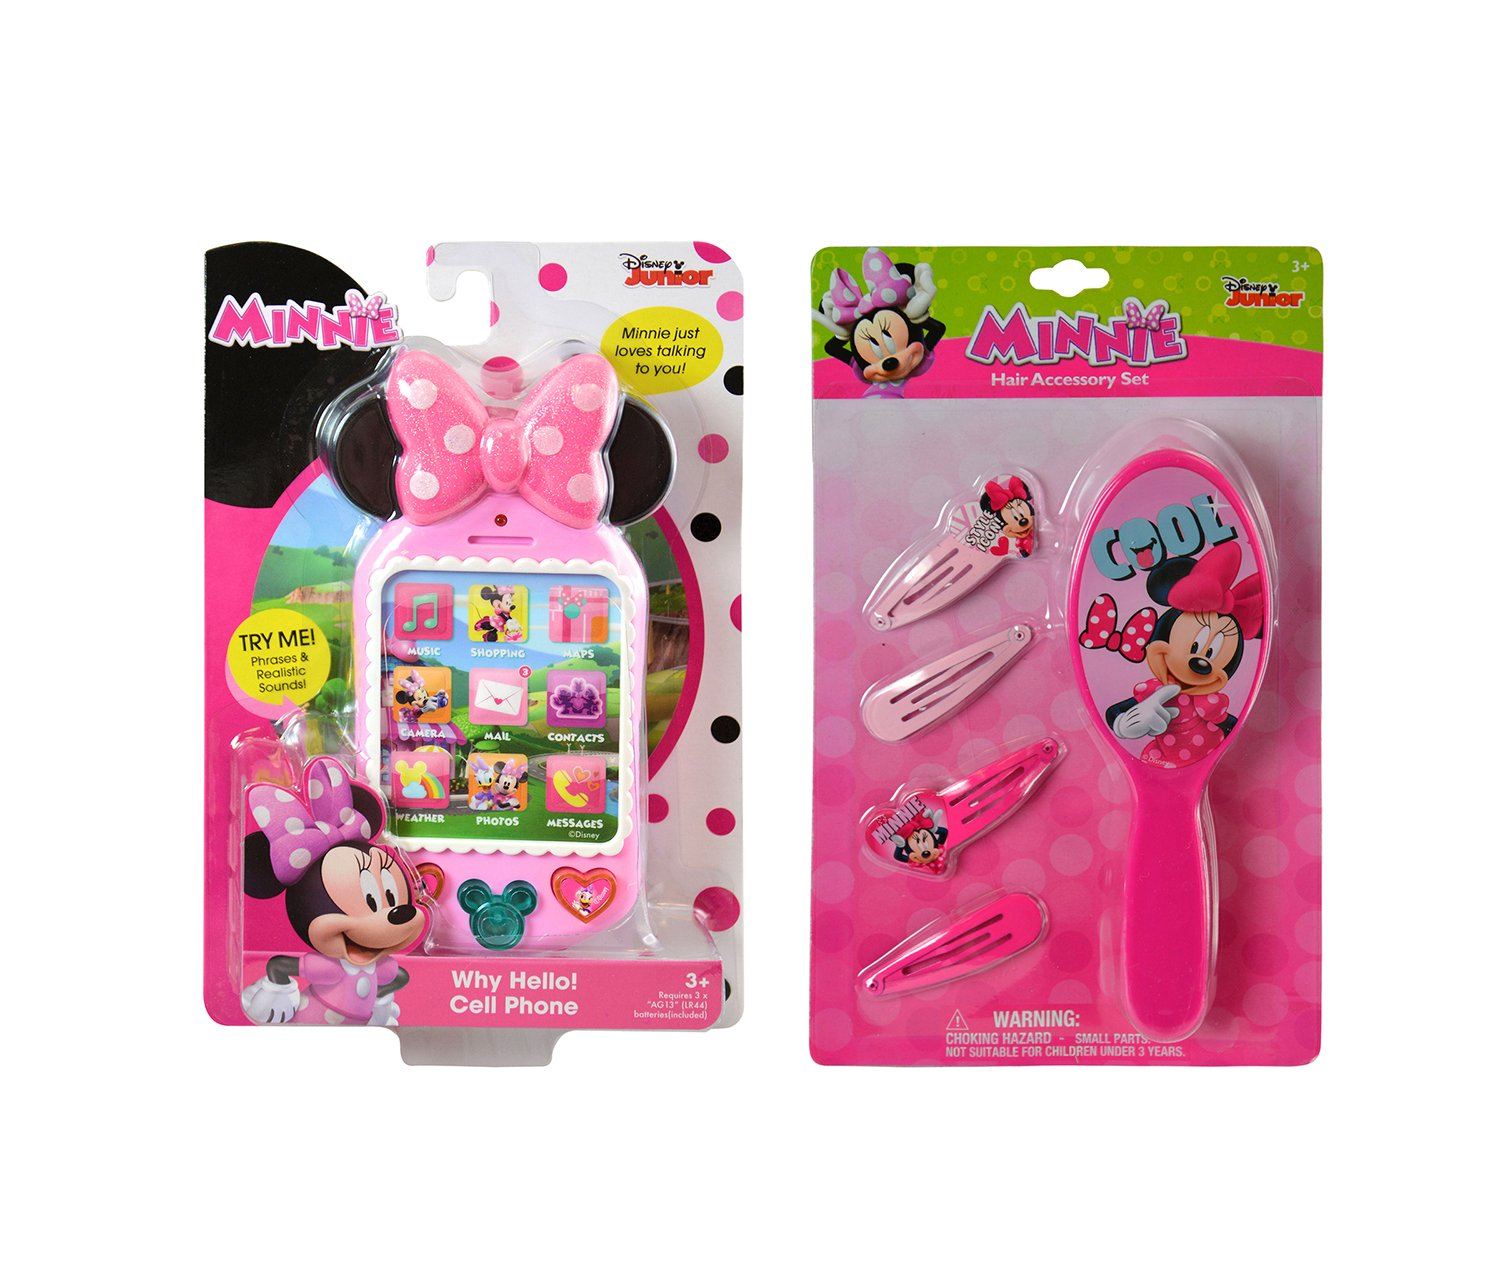 Mozlly Value Pack - Minnie Mouse Hair Accessory 5pc Set AND Why Hello There! Pink Cell Phone - Item #K103097-103049